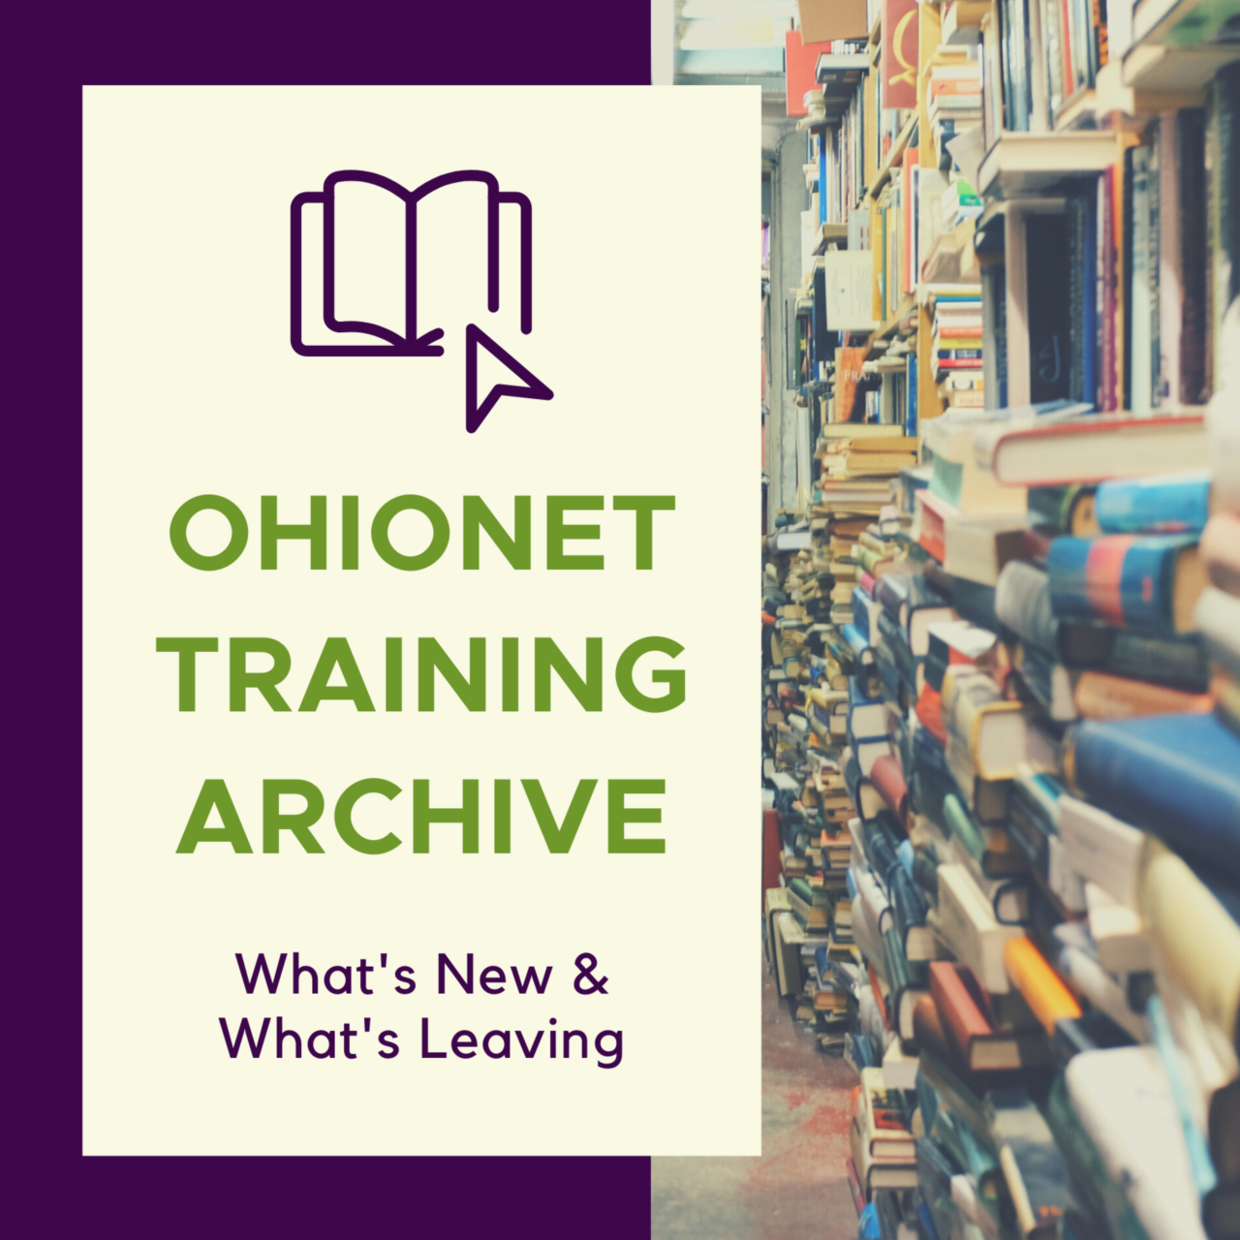 OhioNET Training Archive: What's New & What's Leaving